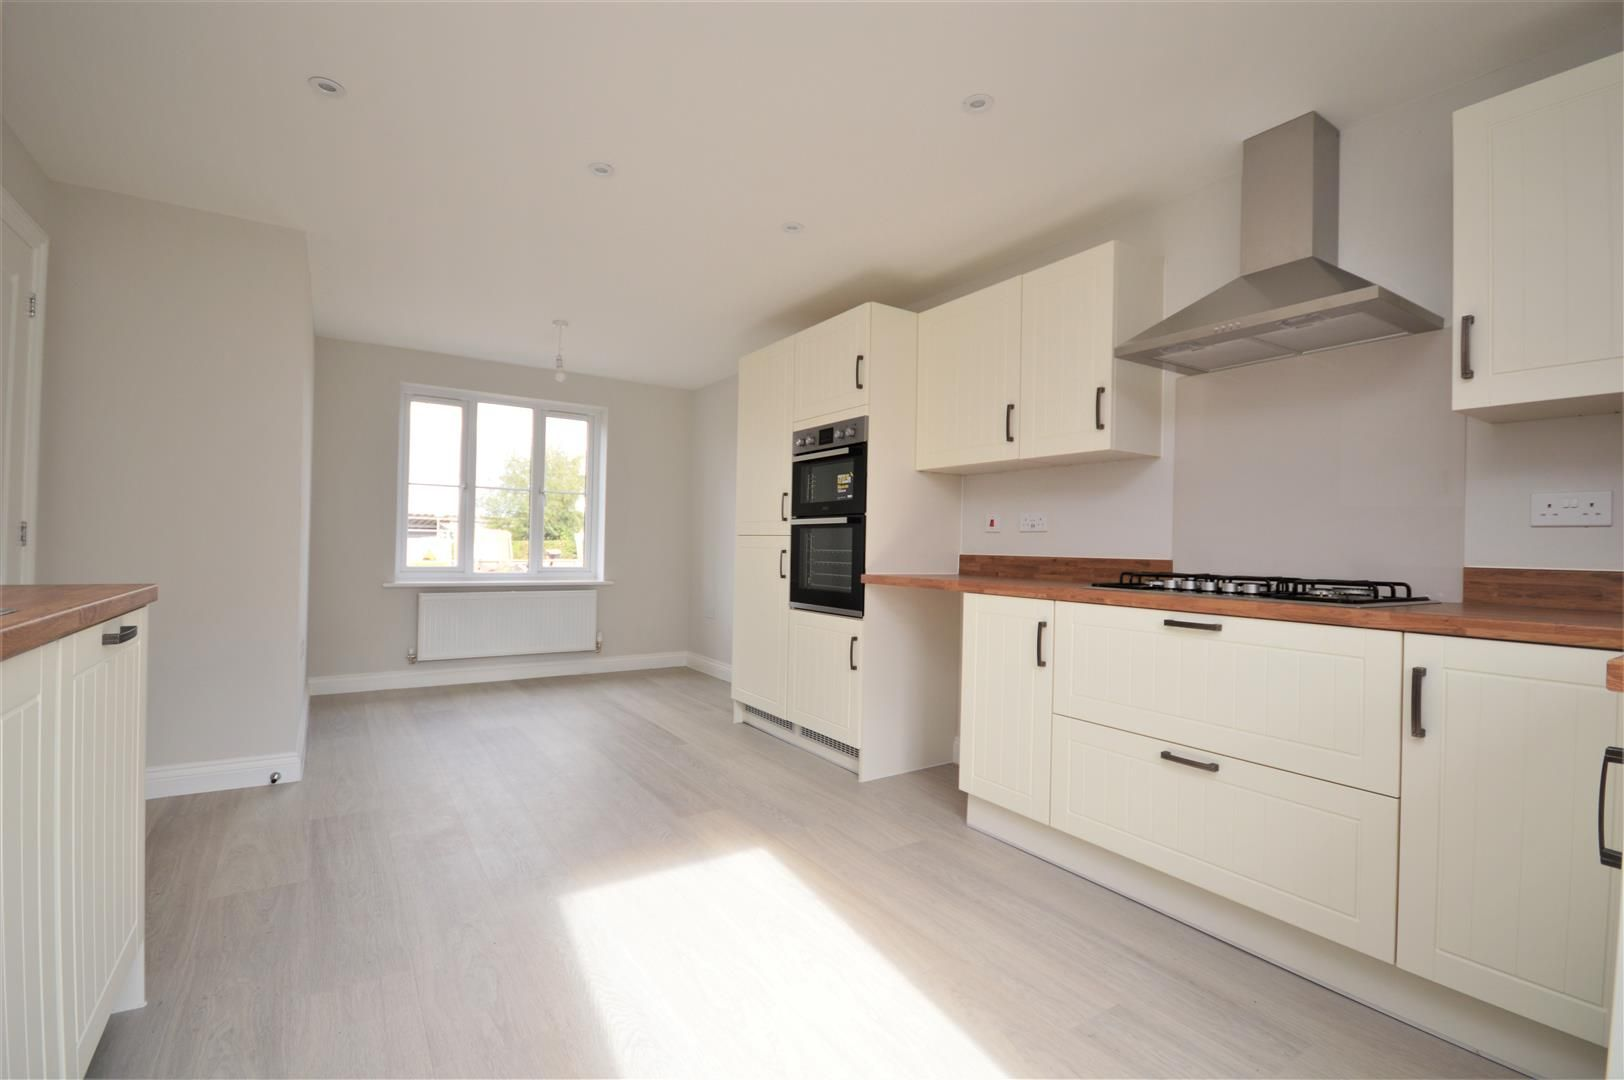 4 bed detached for sale in Kingstone  - Property Image 4